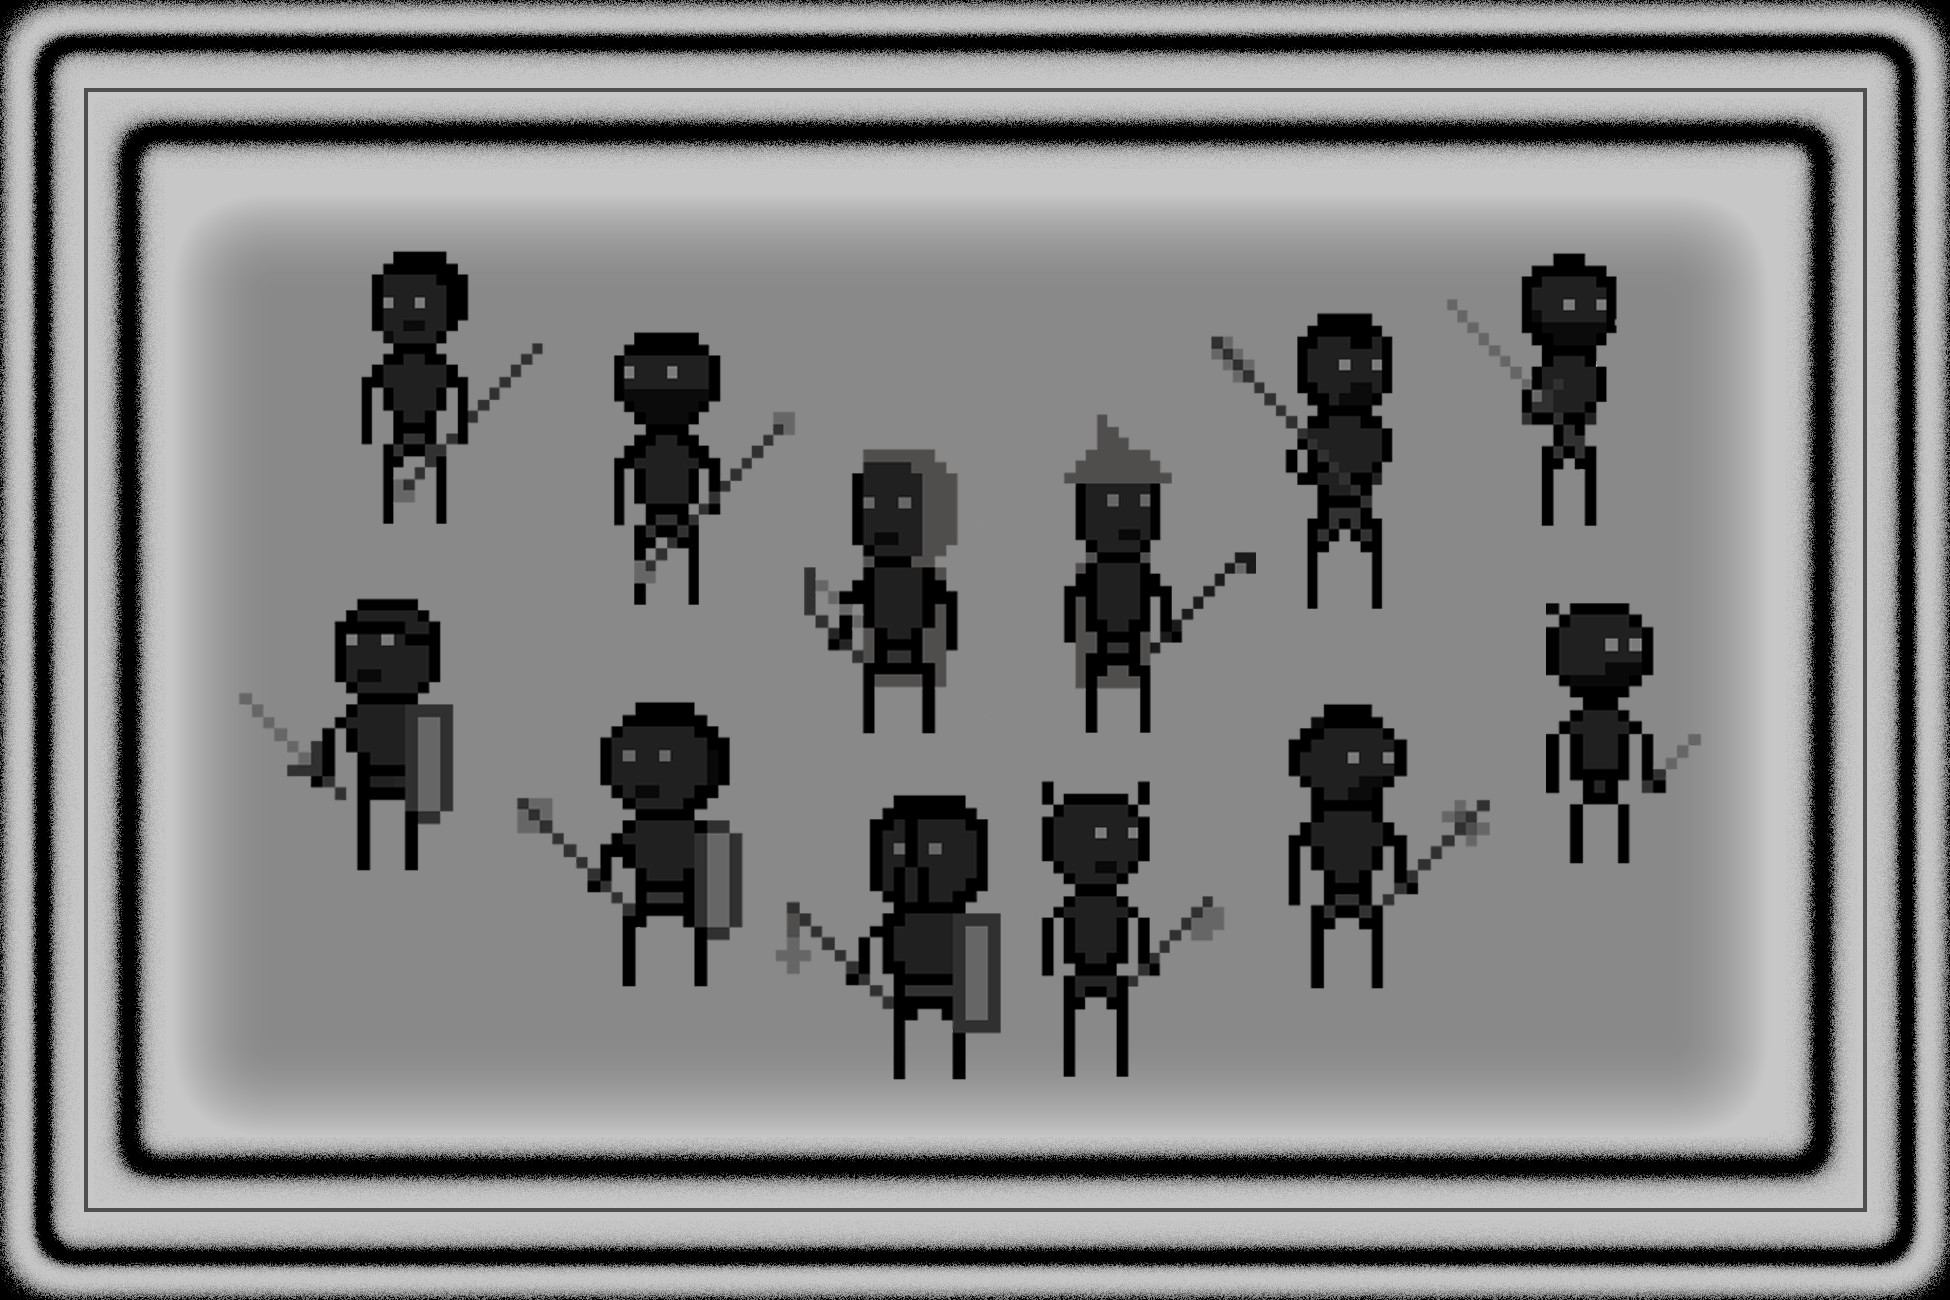 Simple 2D characters level 1